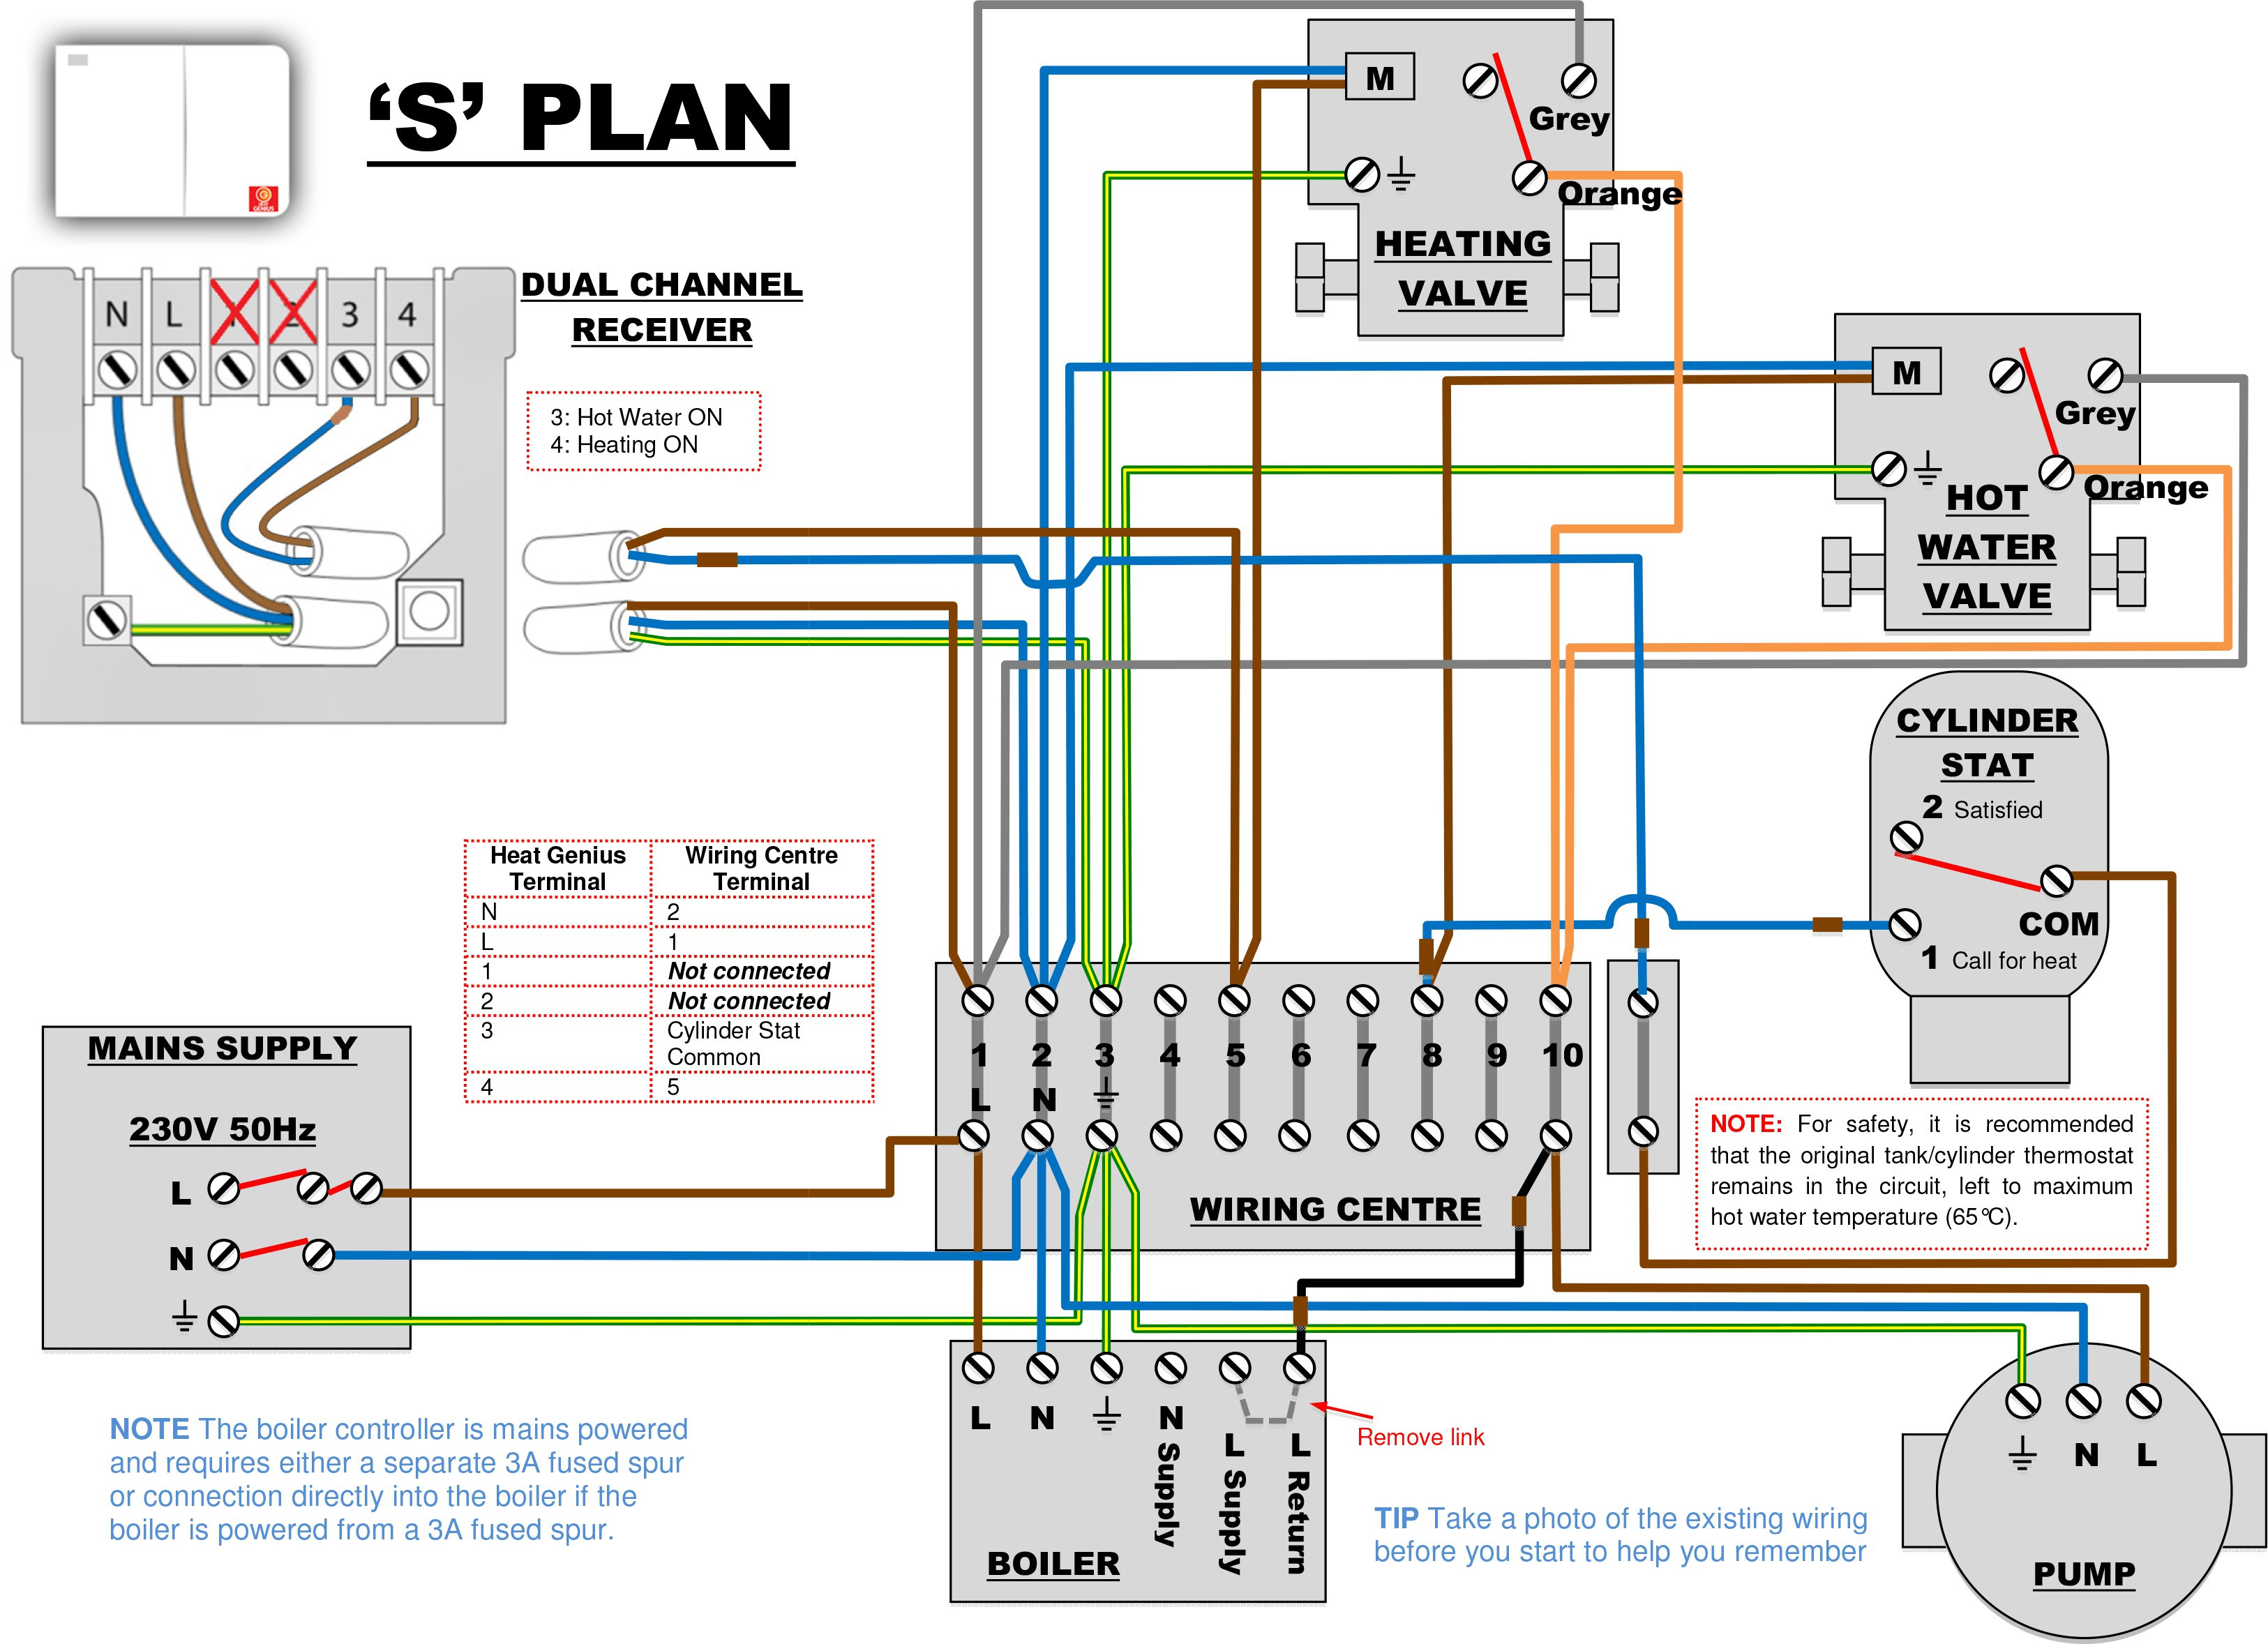 Nest T Stat Wiring Diagram | Wiring Diagram - Nest Wiring Diagram With Labels